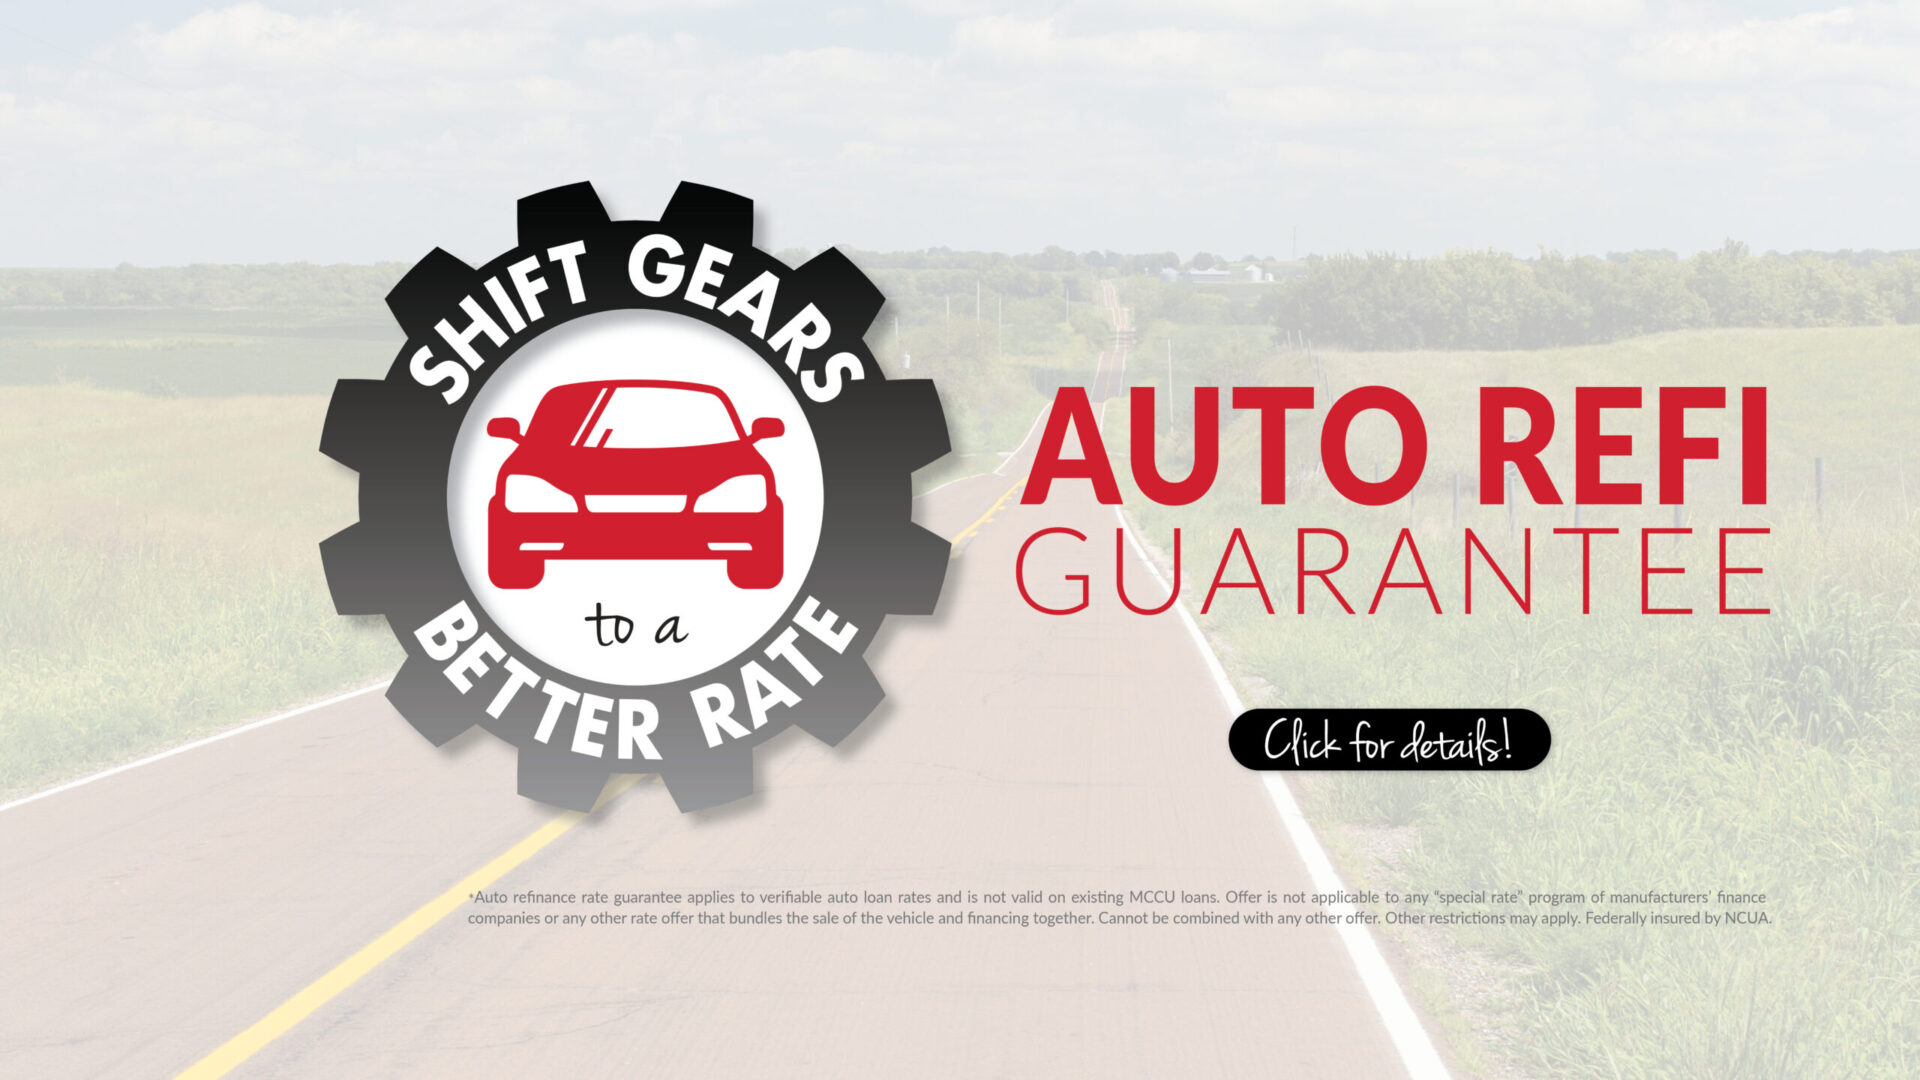 Gear shape with car inside. Shift gears to a better rate - Auto Refi Guarantee. Click for more info. Exclusions may apply.